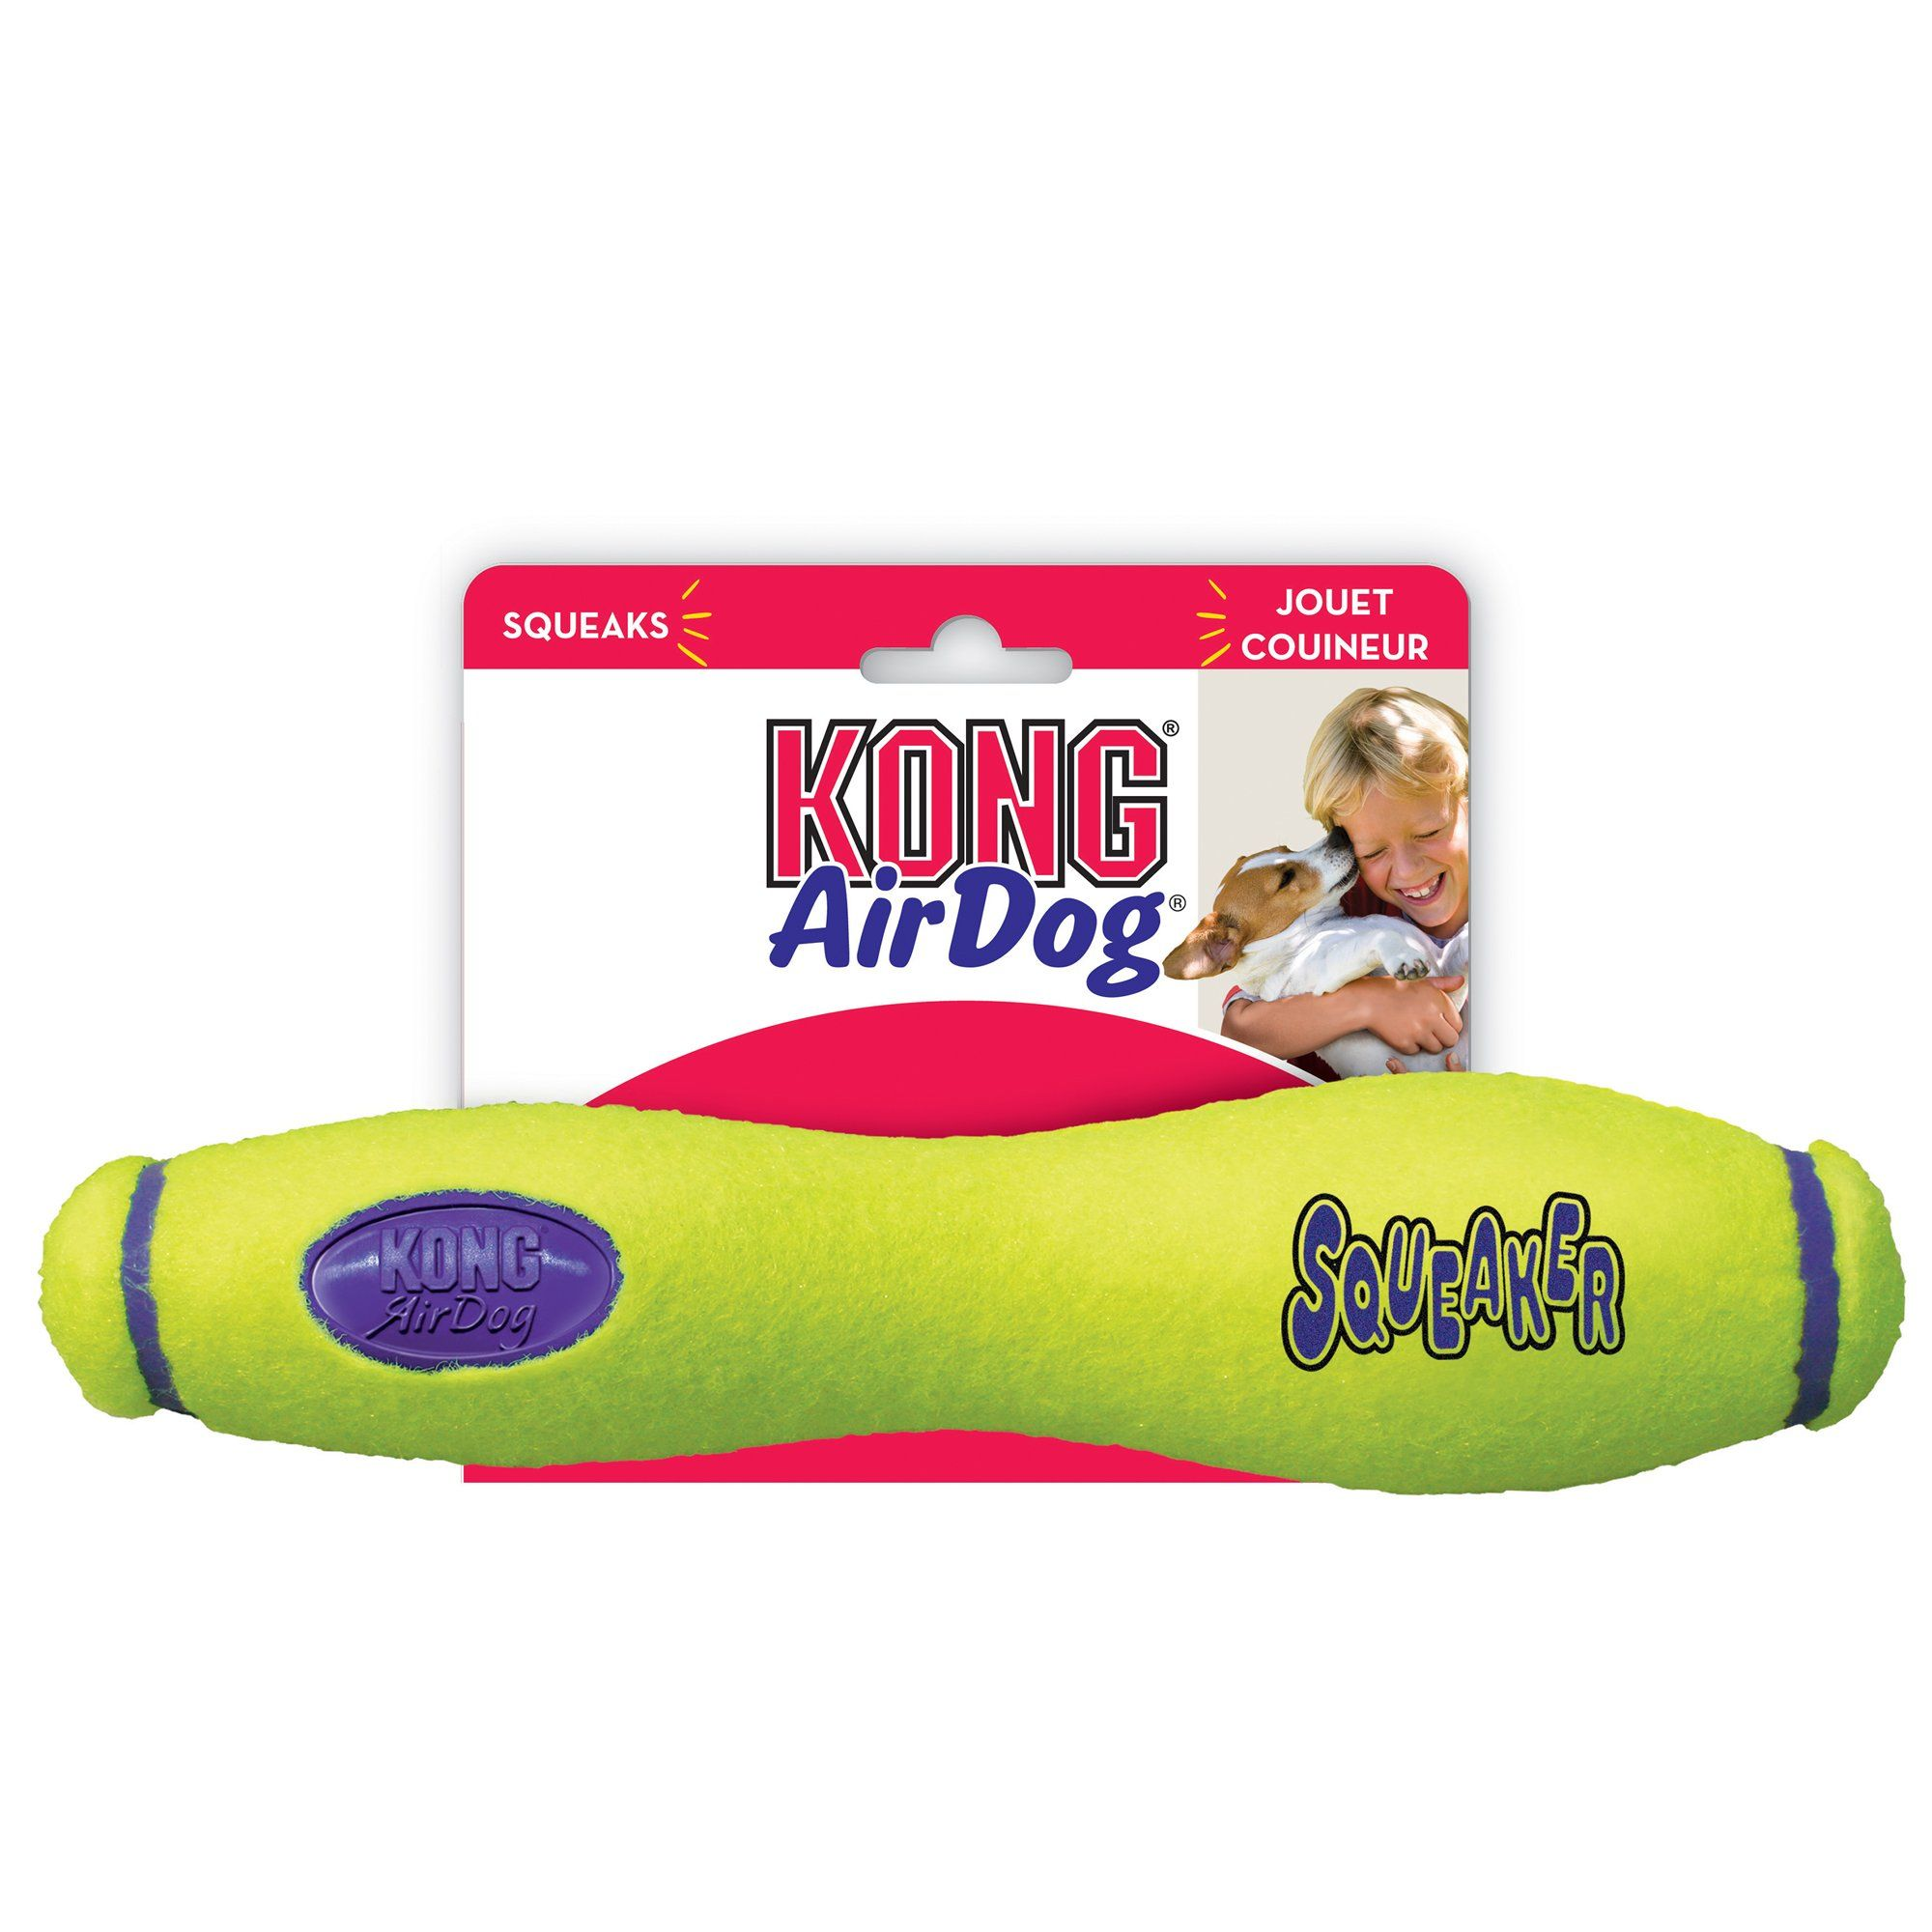 Air kong squeaker fetch stick dog toy large yellow dog